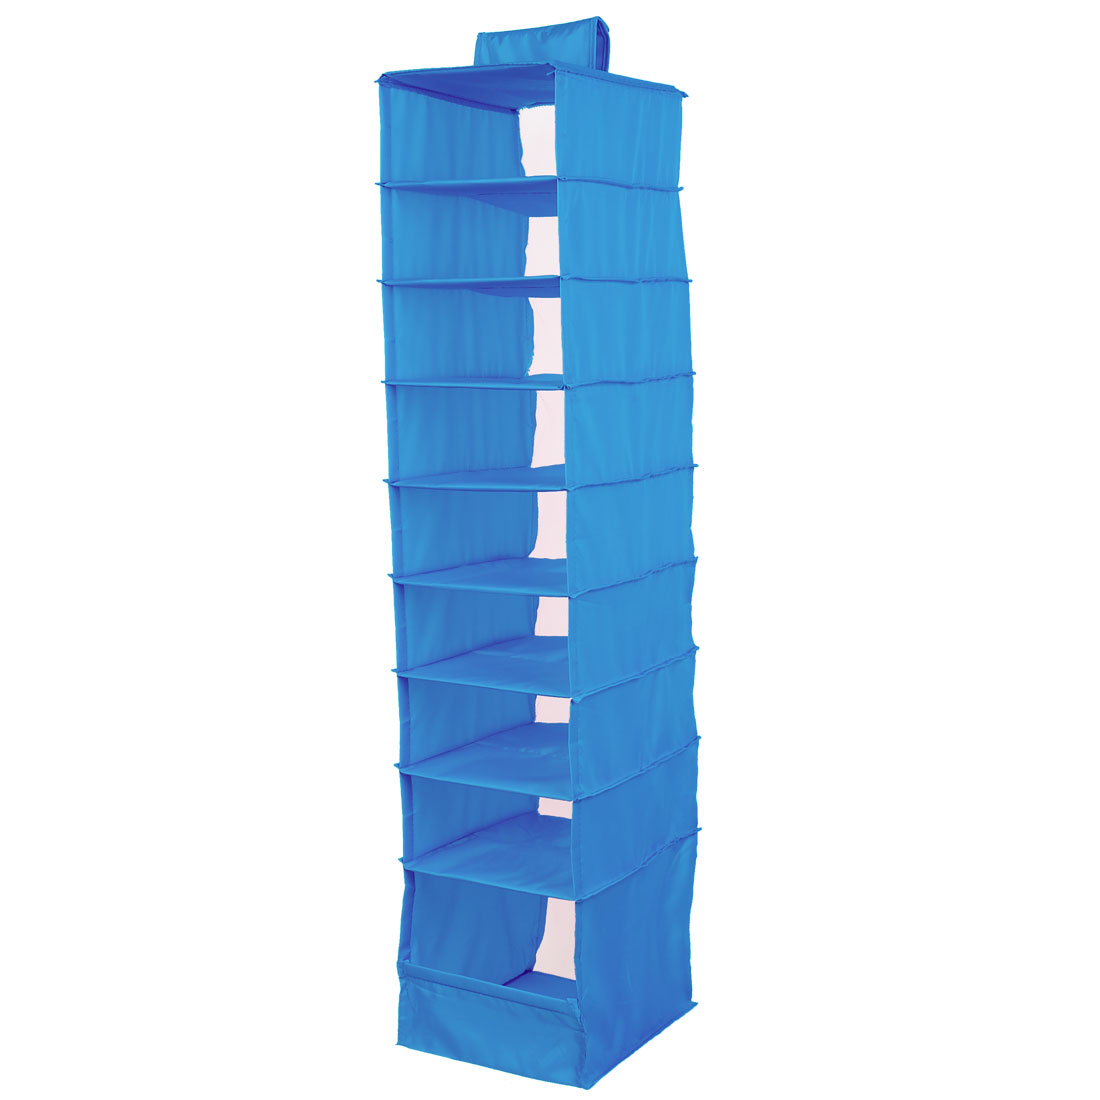 Foldable 9 Compartments Clothes Underwear Organizer Storage Box Blue